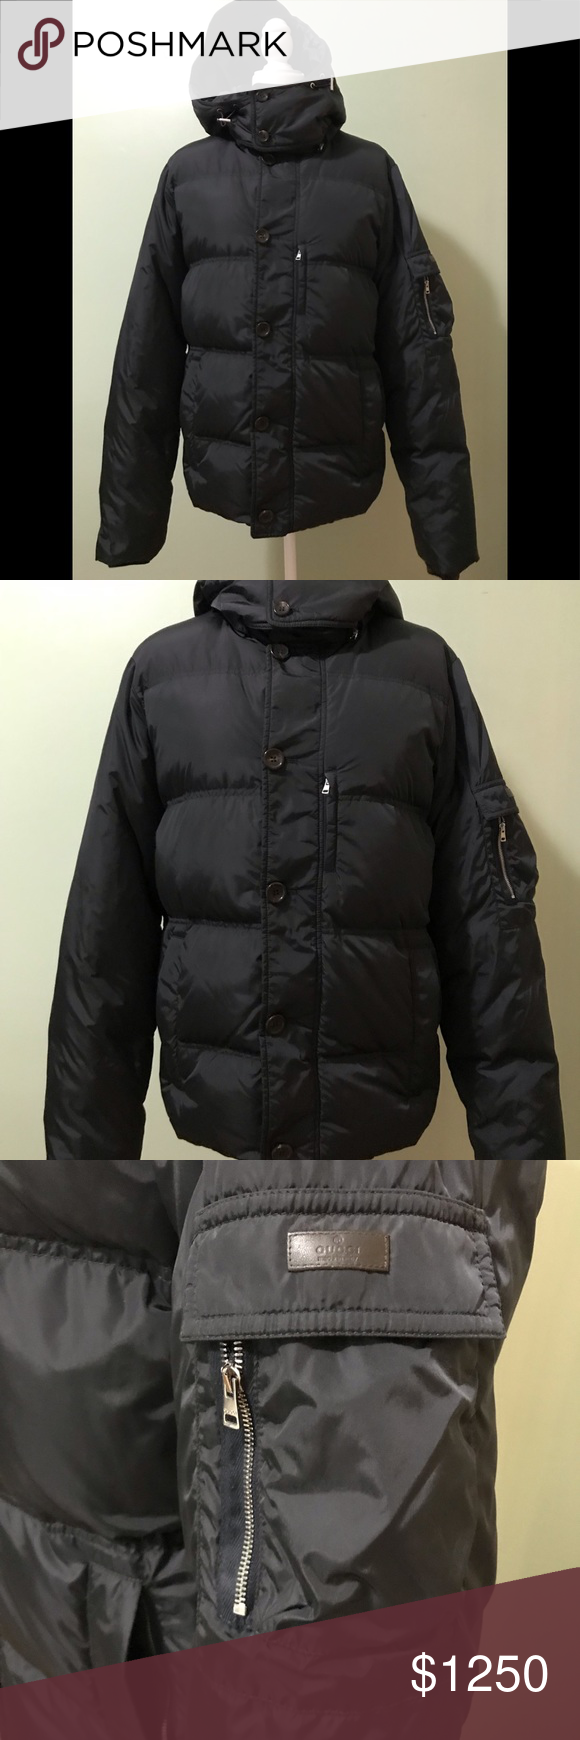 051cc0614 GUCCI Goose Down Winter Coat GUCCI Goose Down Winter Coat 90% Down ...